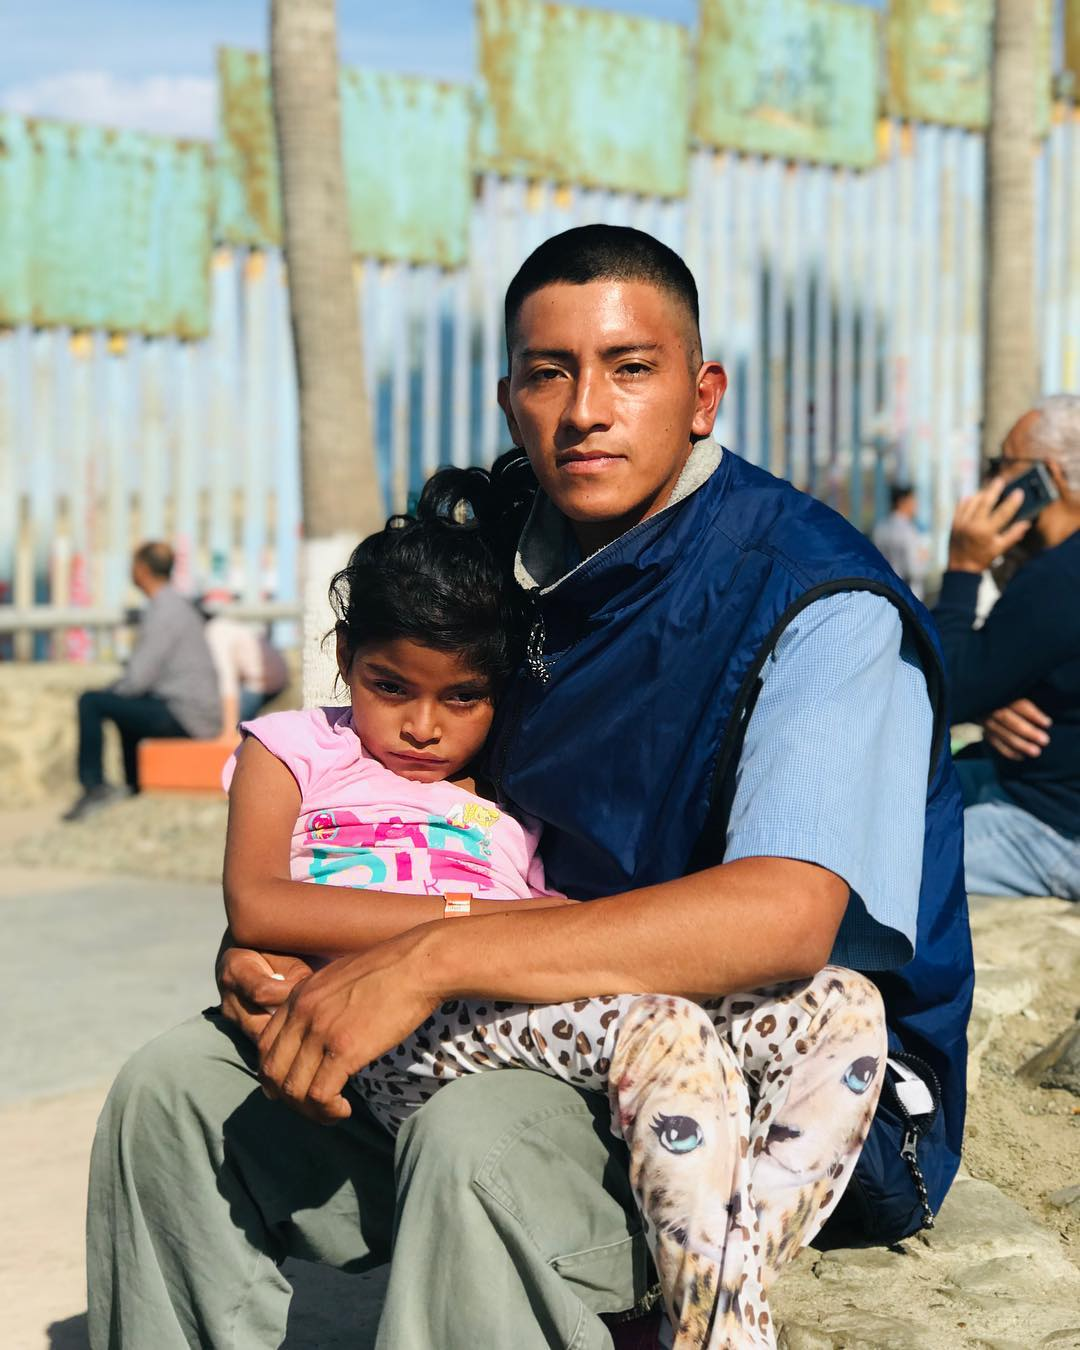 Migrant Father-A journey on foot to the US for Lesly